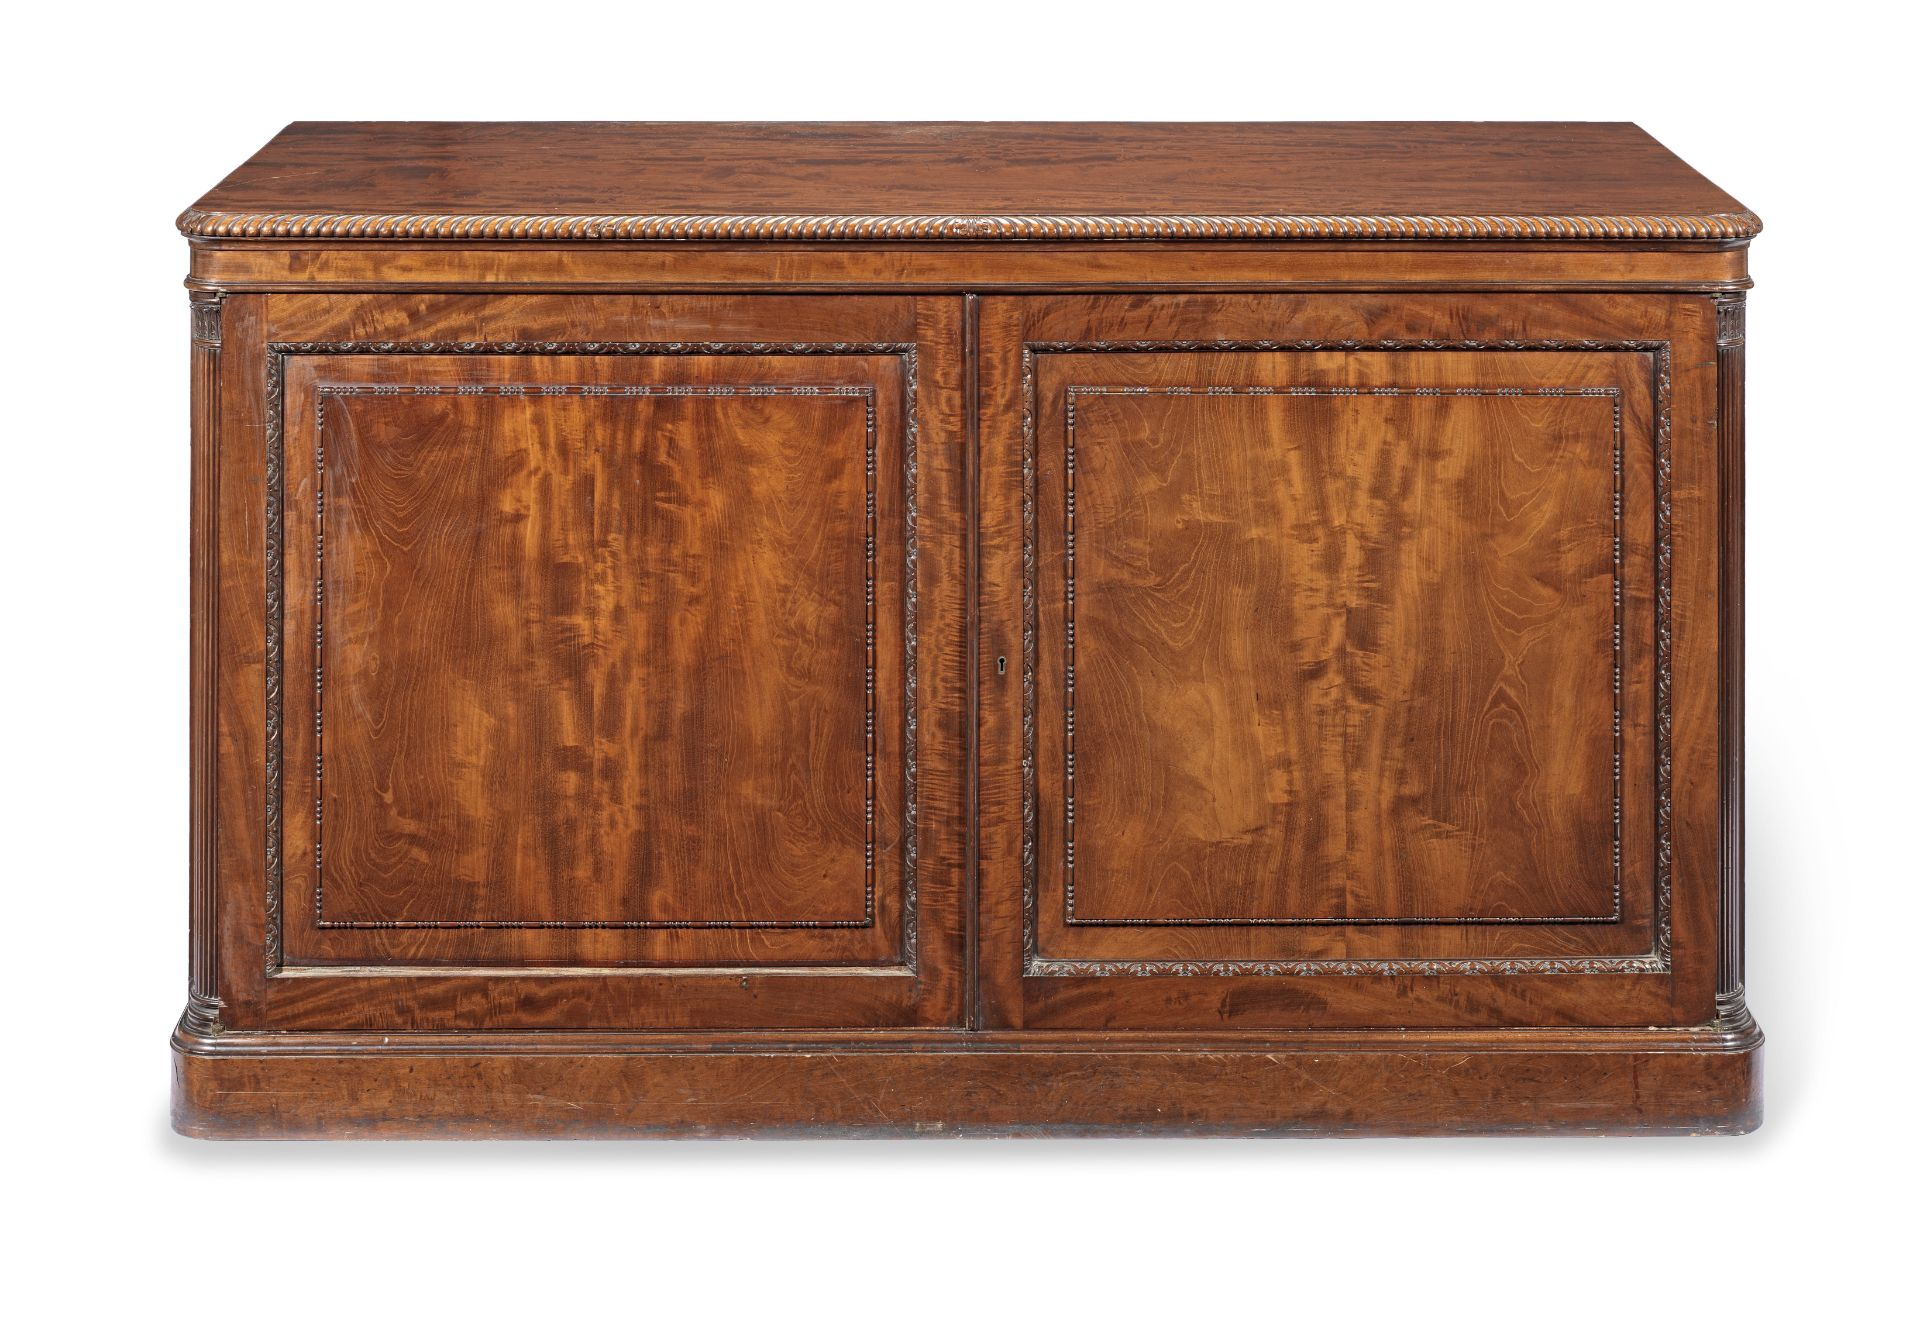 Los 51 - A George IV mahogany library folio/print cabinet attributed to Gillows